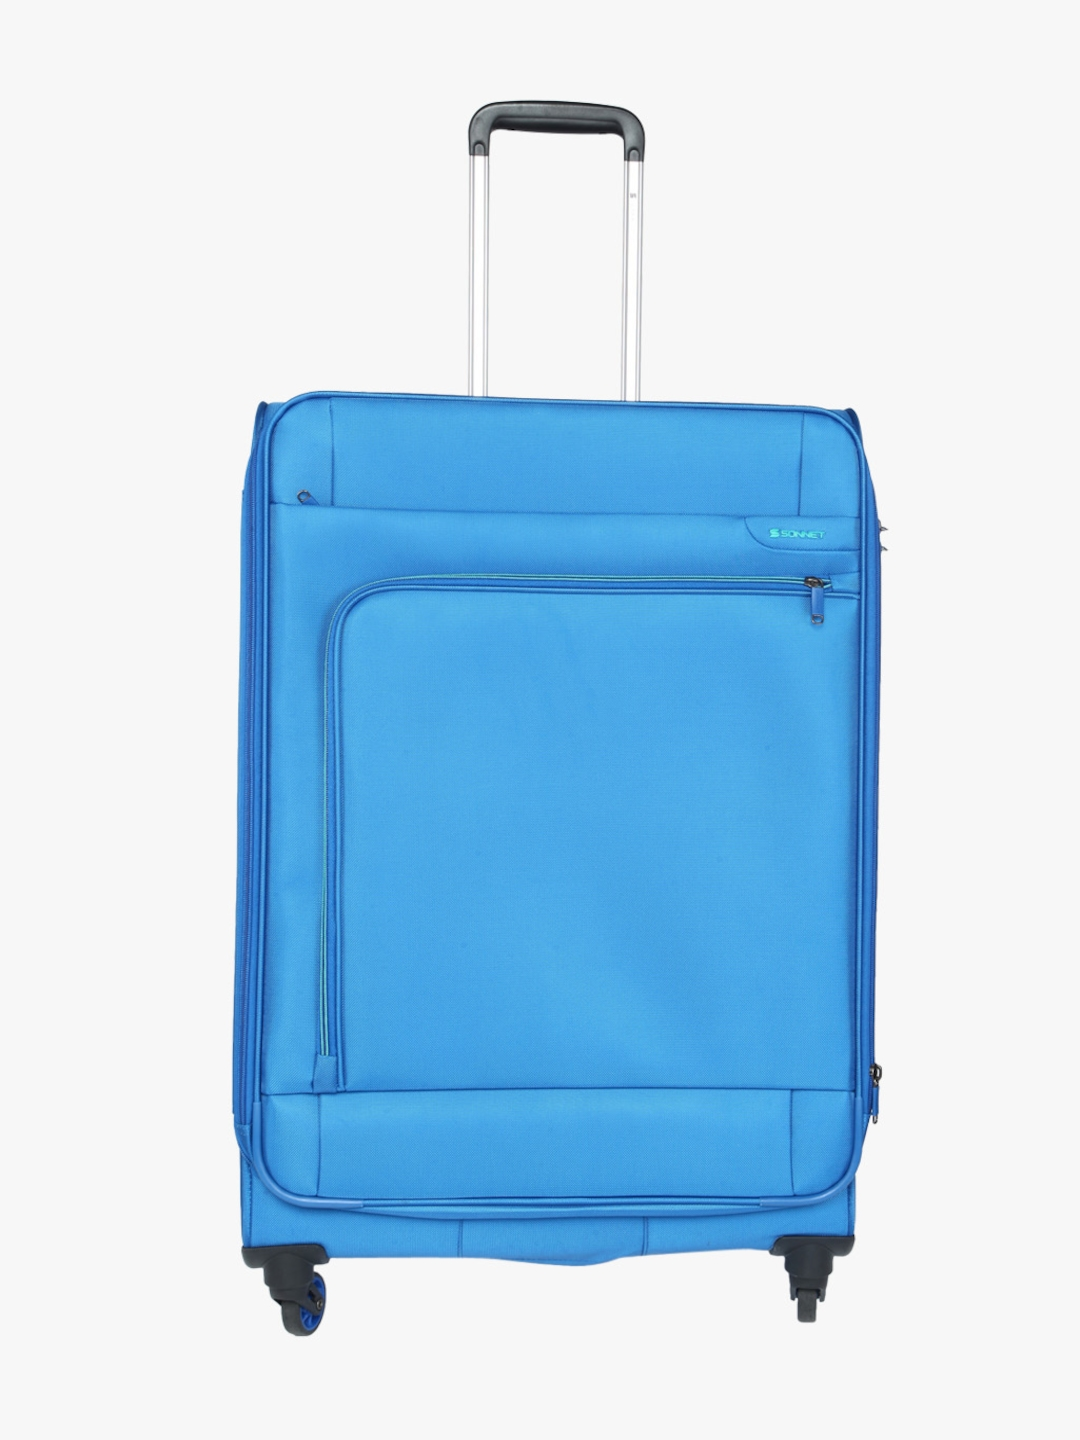 Sonnet Blue Solid 4 Wheel Check In Soft Luggage